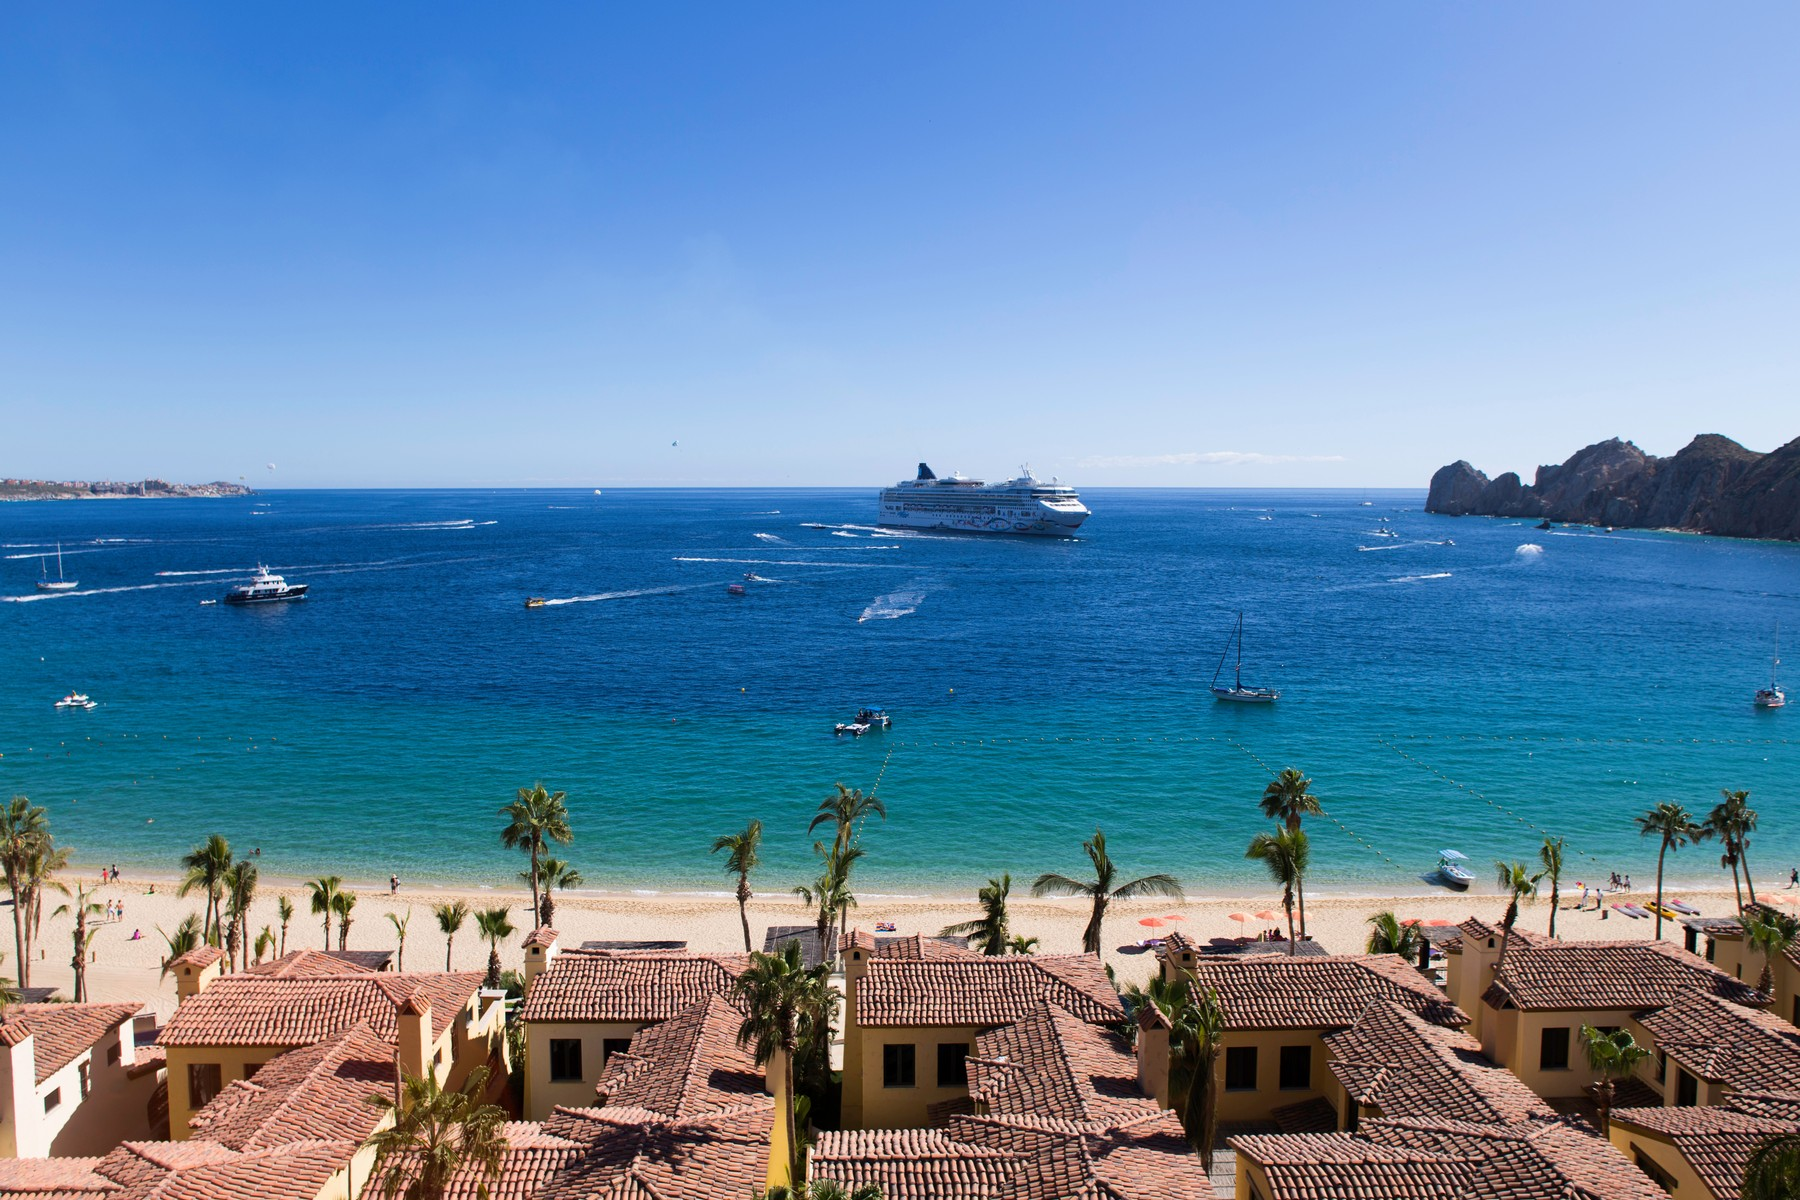 شقة بعمارة للـ Rent في Hacienda Penthouse 4-602 Cabo San Lucas Hacienda Beach Club and Residences Cabo San Lucas, Baja California Sur, 23453 Mexico